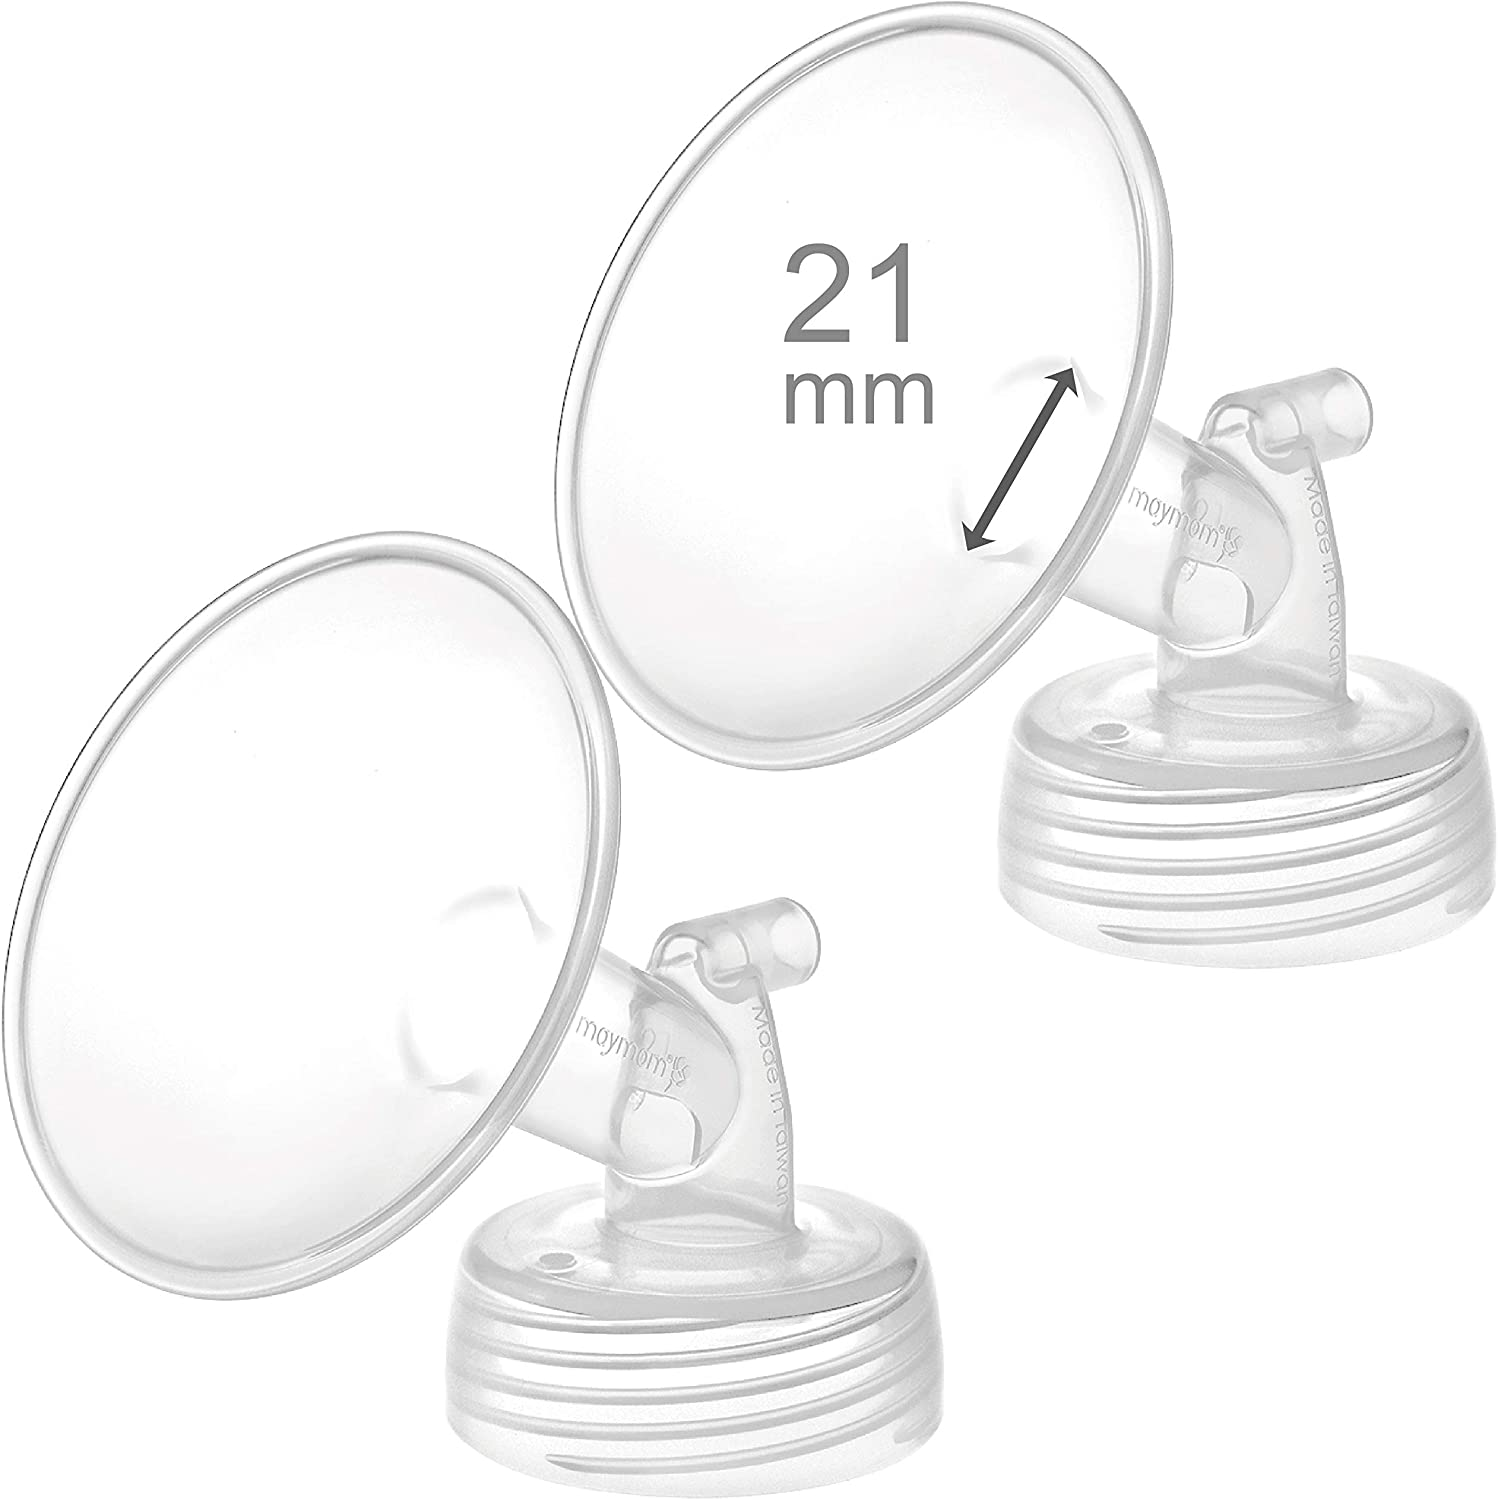 2X 21 mm Maymom Wide Neck Pump Parts for Spectra S1//S2 Pumps; Incl Wide Mouth Flanges; Not Original Spectra Flange; Replaces Spectra Shield 21 mm Small Spectra Flange